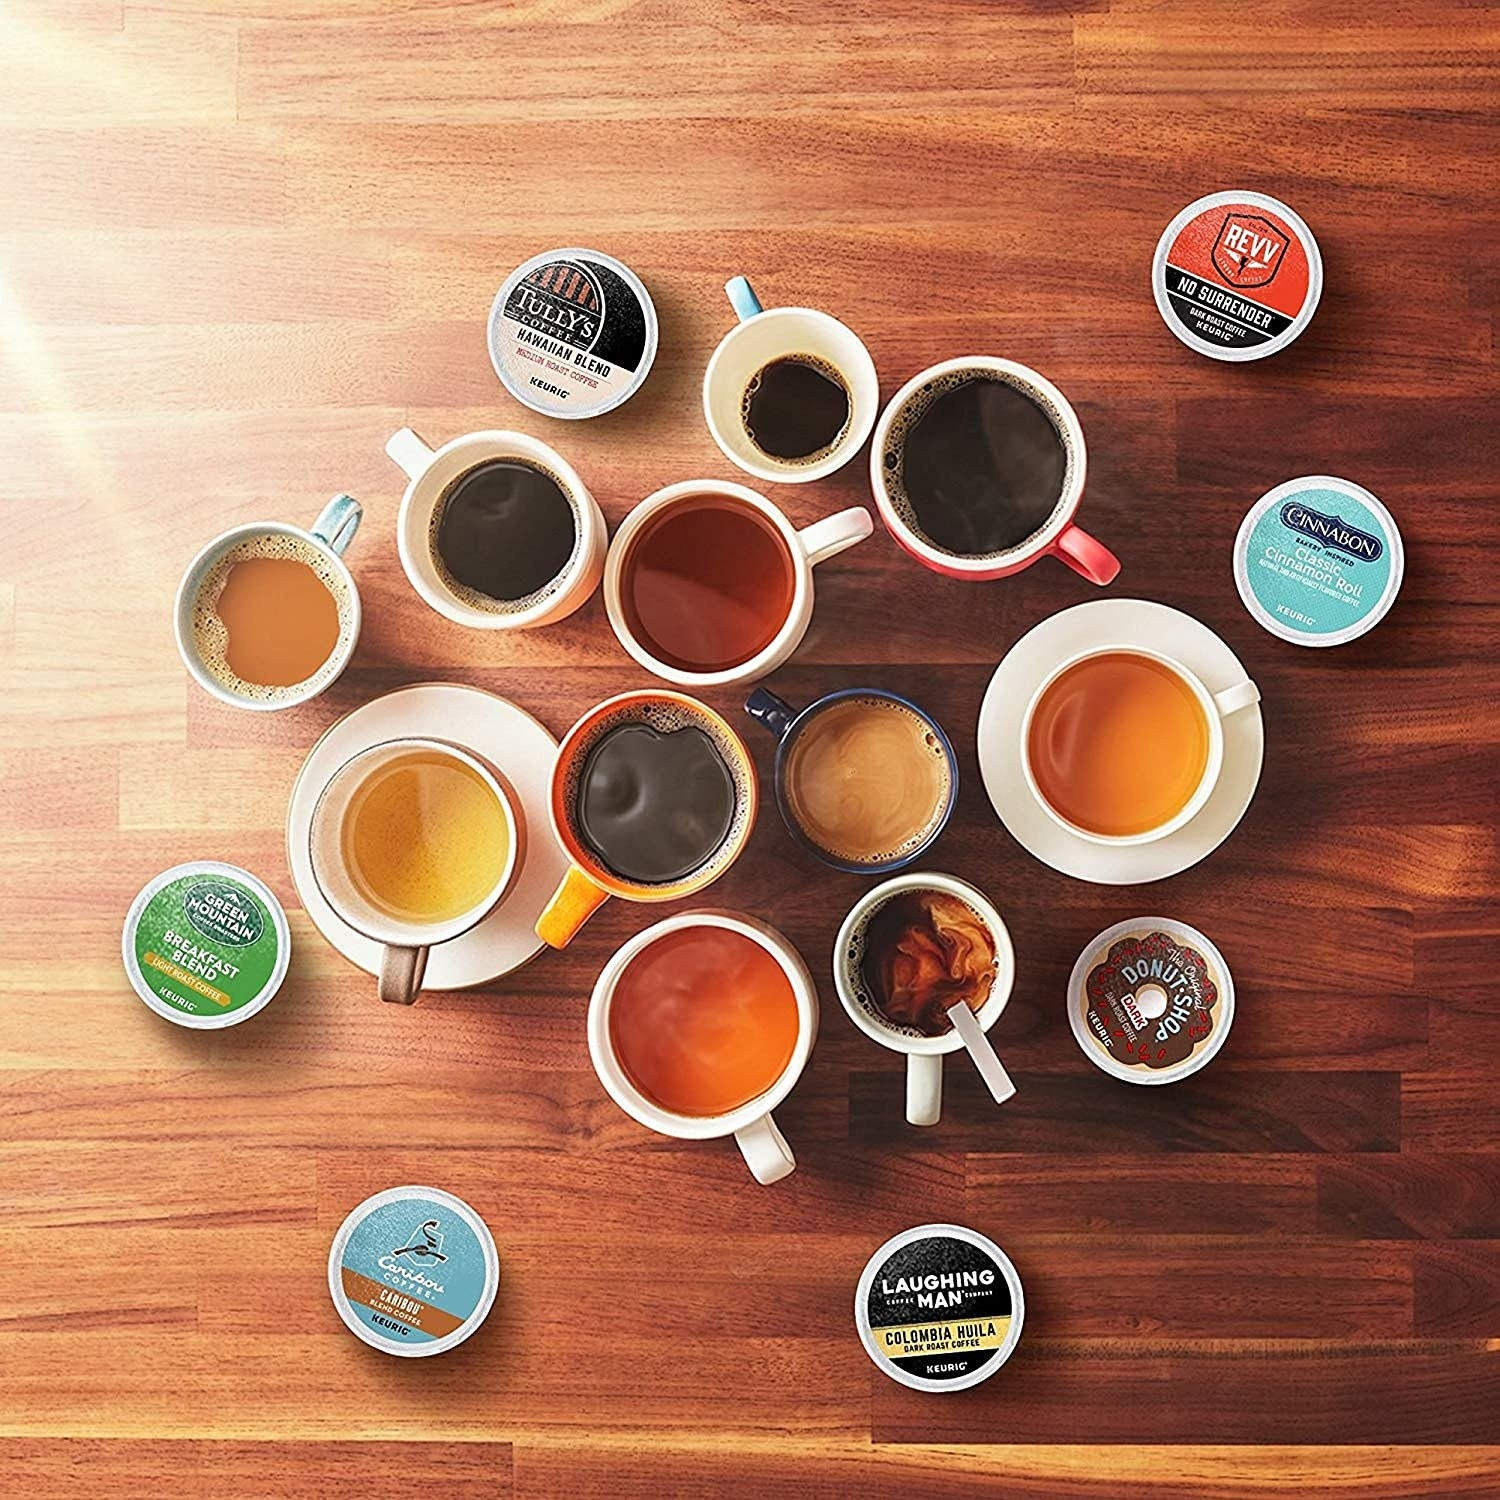 Coffee cups on table surrounded by various k-cups